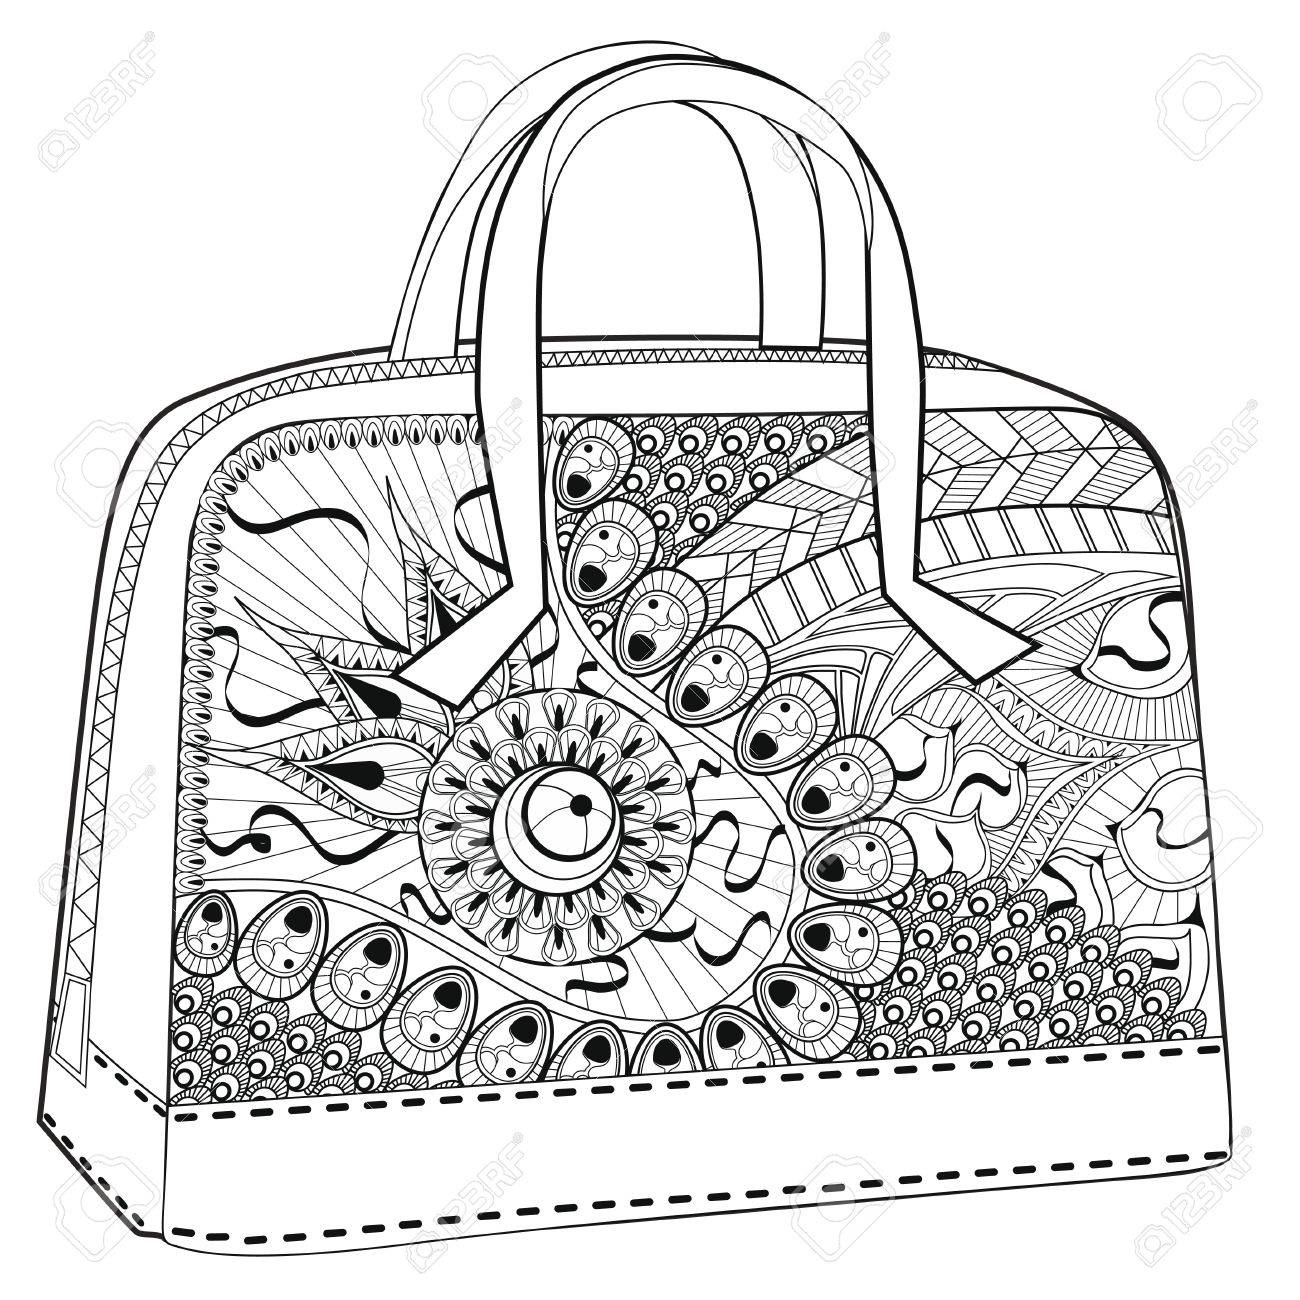 bag coloring for relaxation white background royalty free